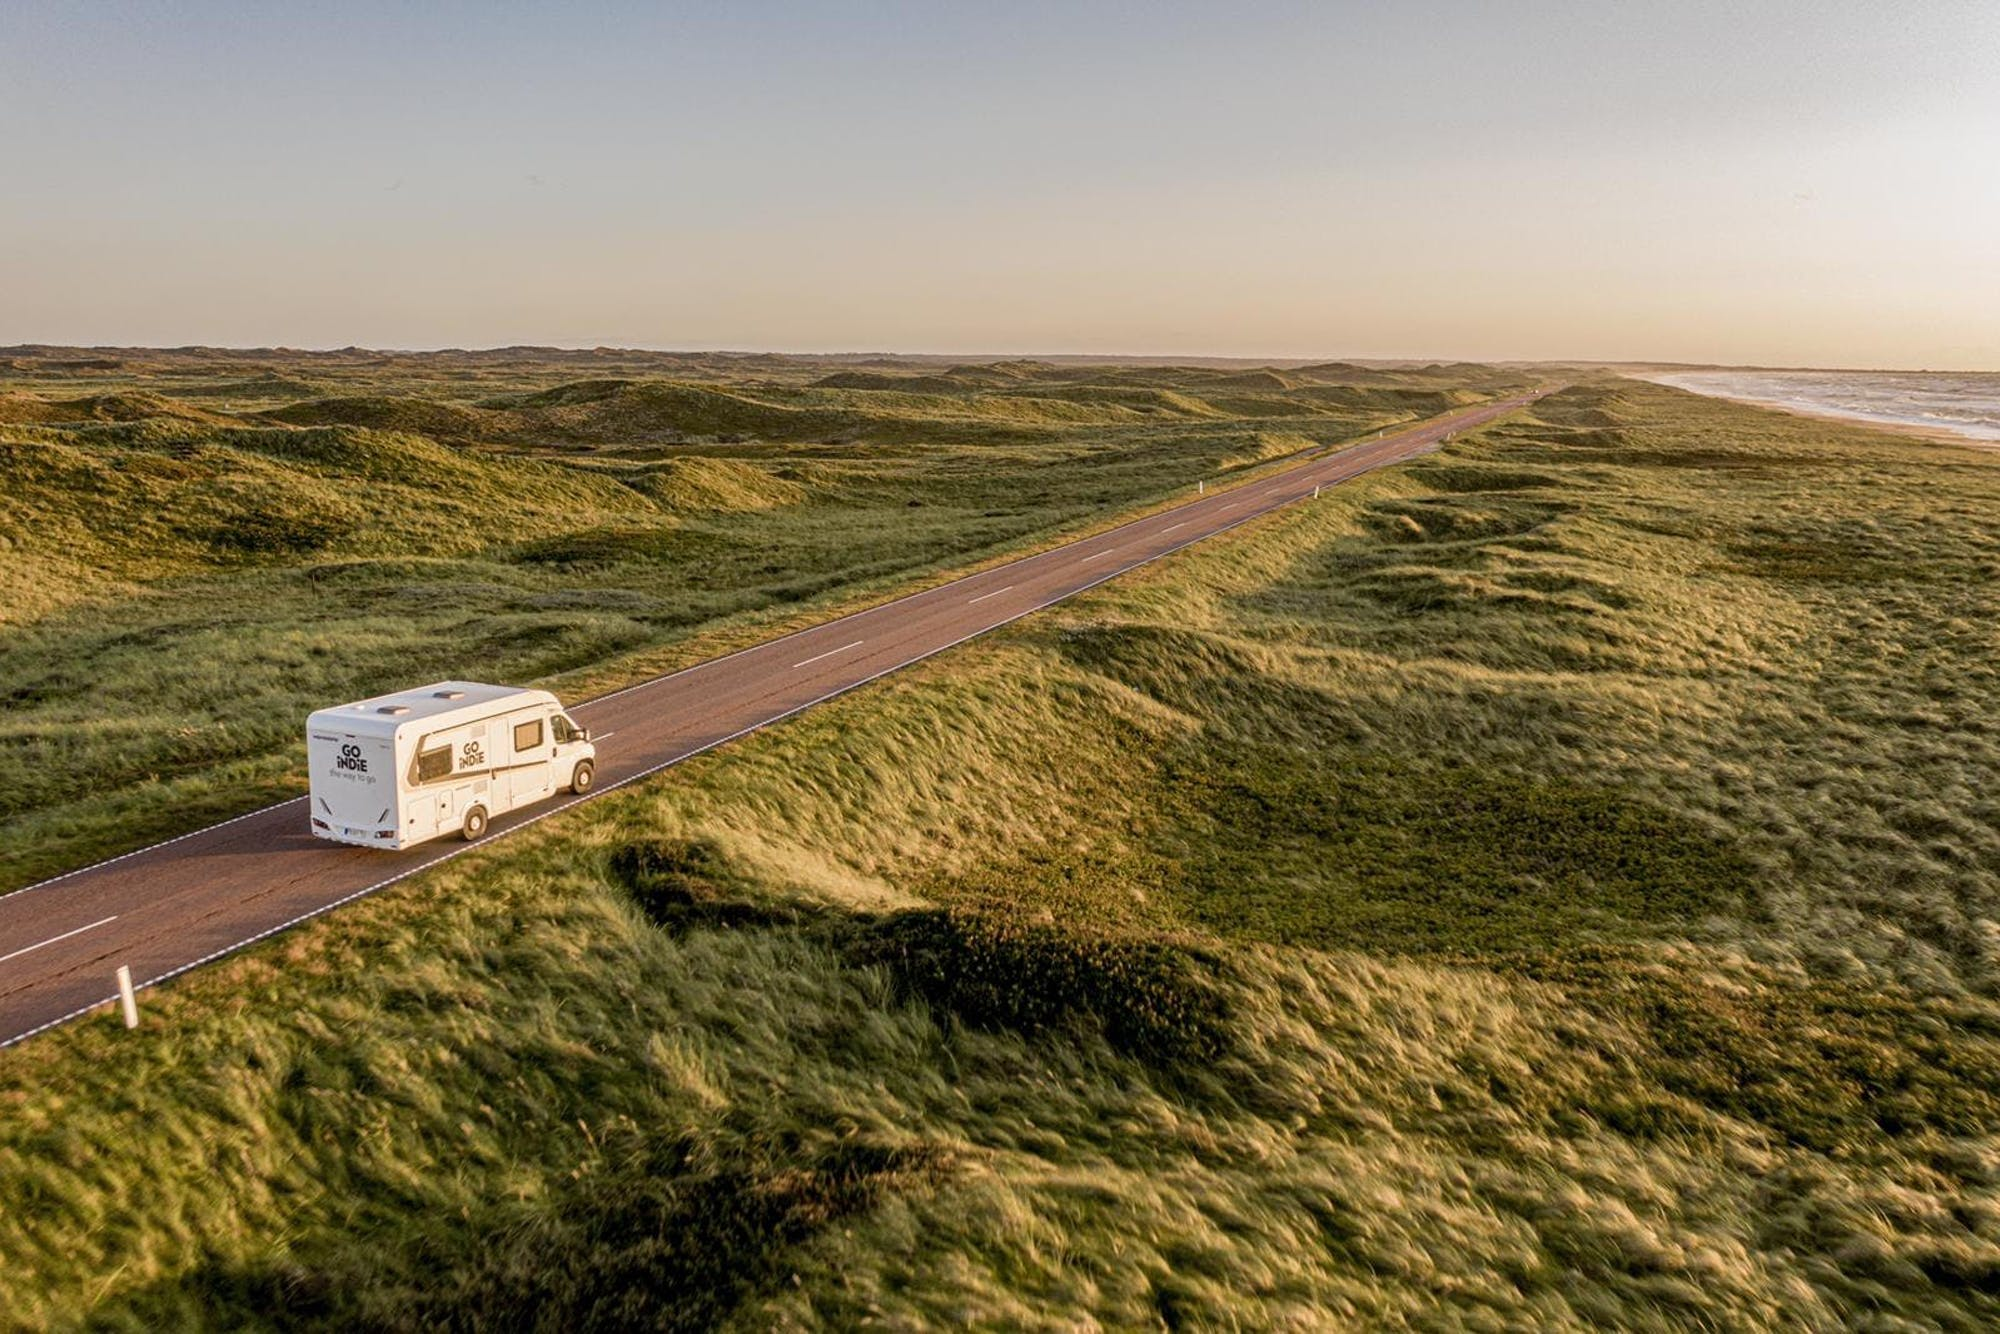 Aerial view of the Atlas campervan on a road with surrounding nature